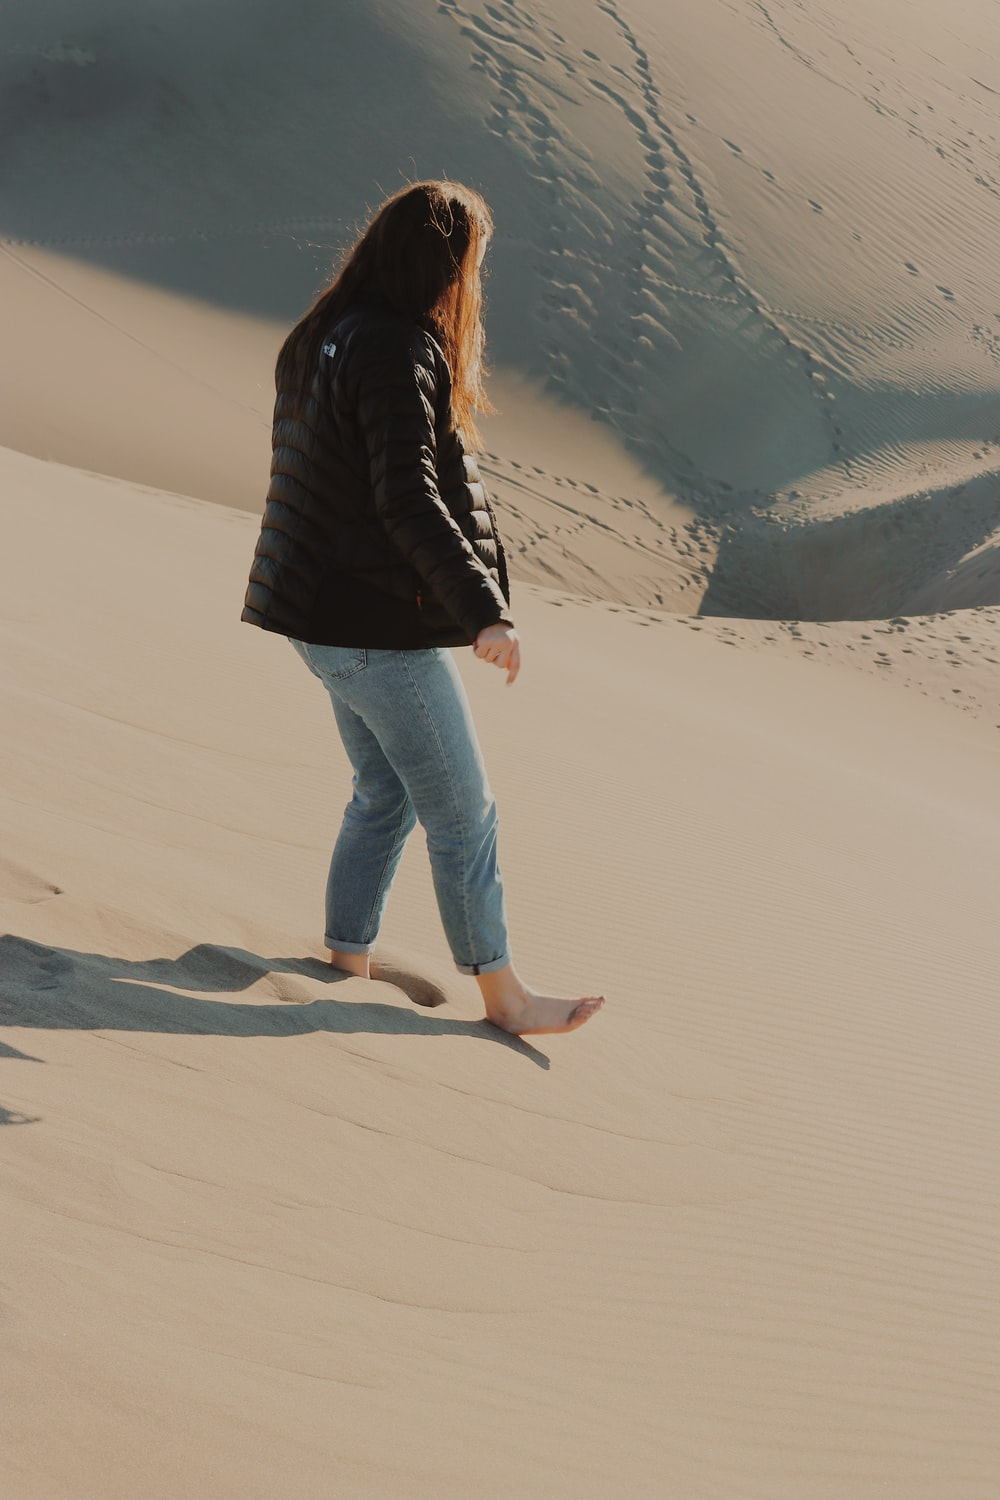 barefoot naked woman with jacket on sand dunes